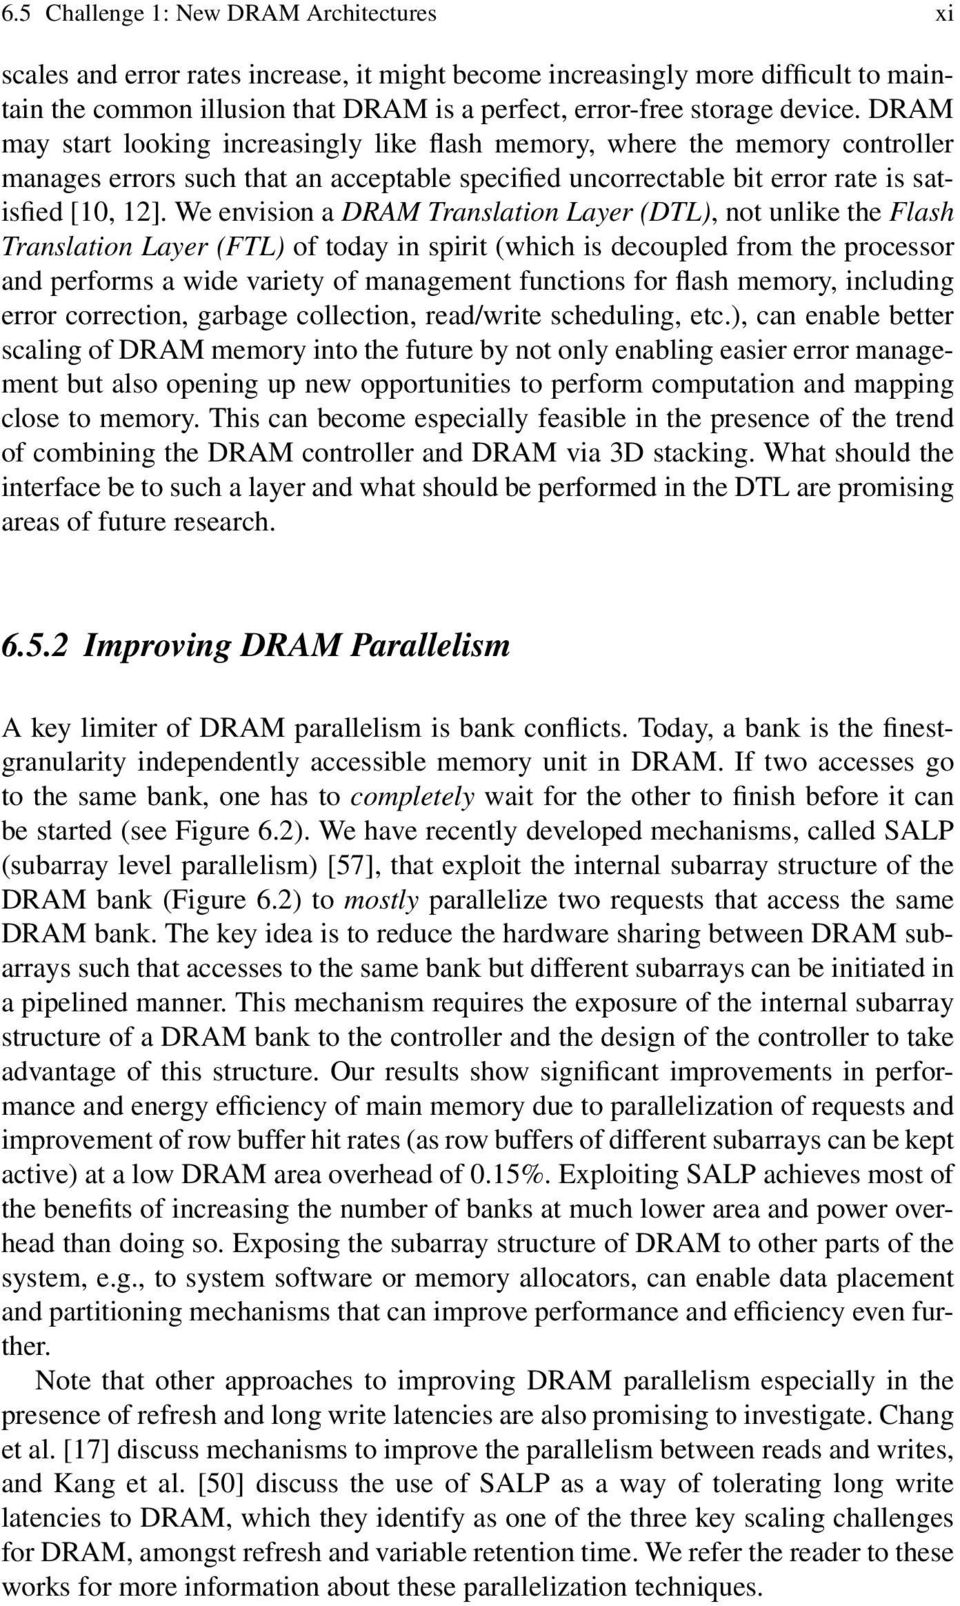 We envision a DRAM Translation Layer (DTL), not unlike the Flash Translation Layer (FTL) of today in spirit (which is decoupled from the processor and performs a wide variety of management functions